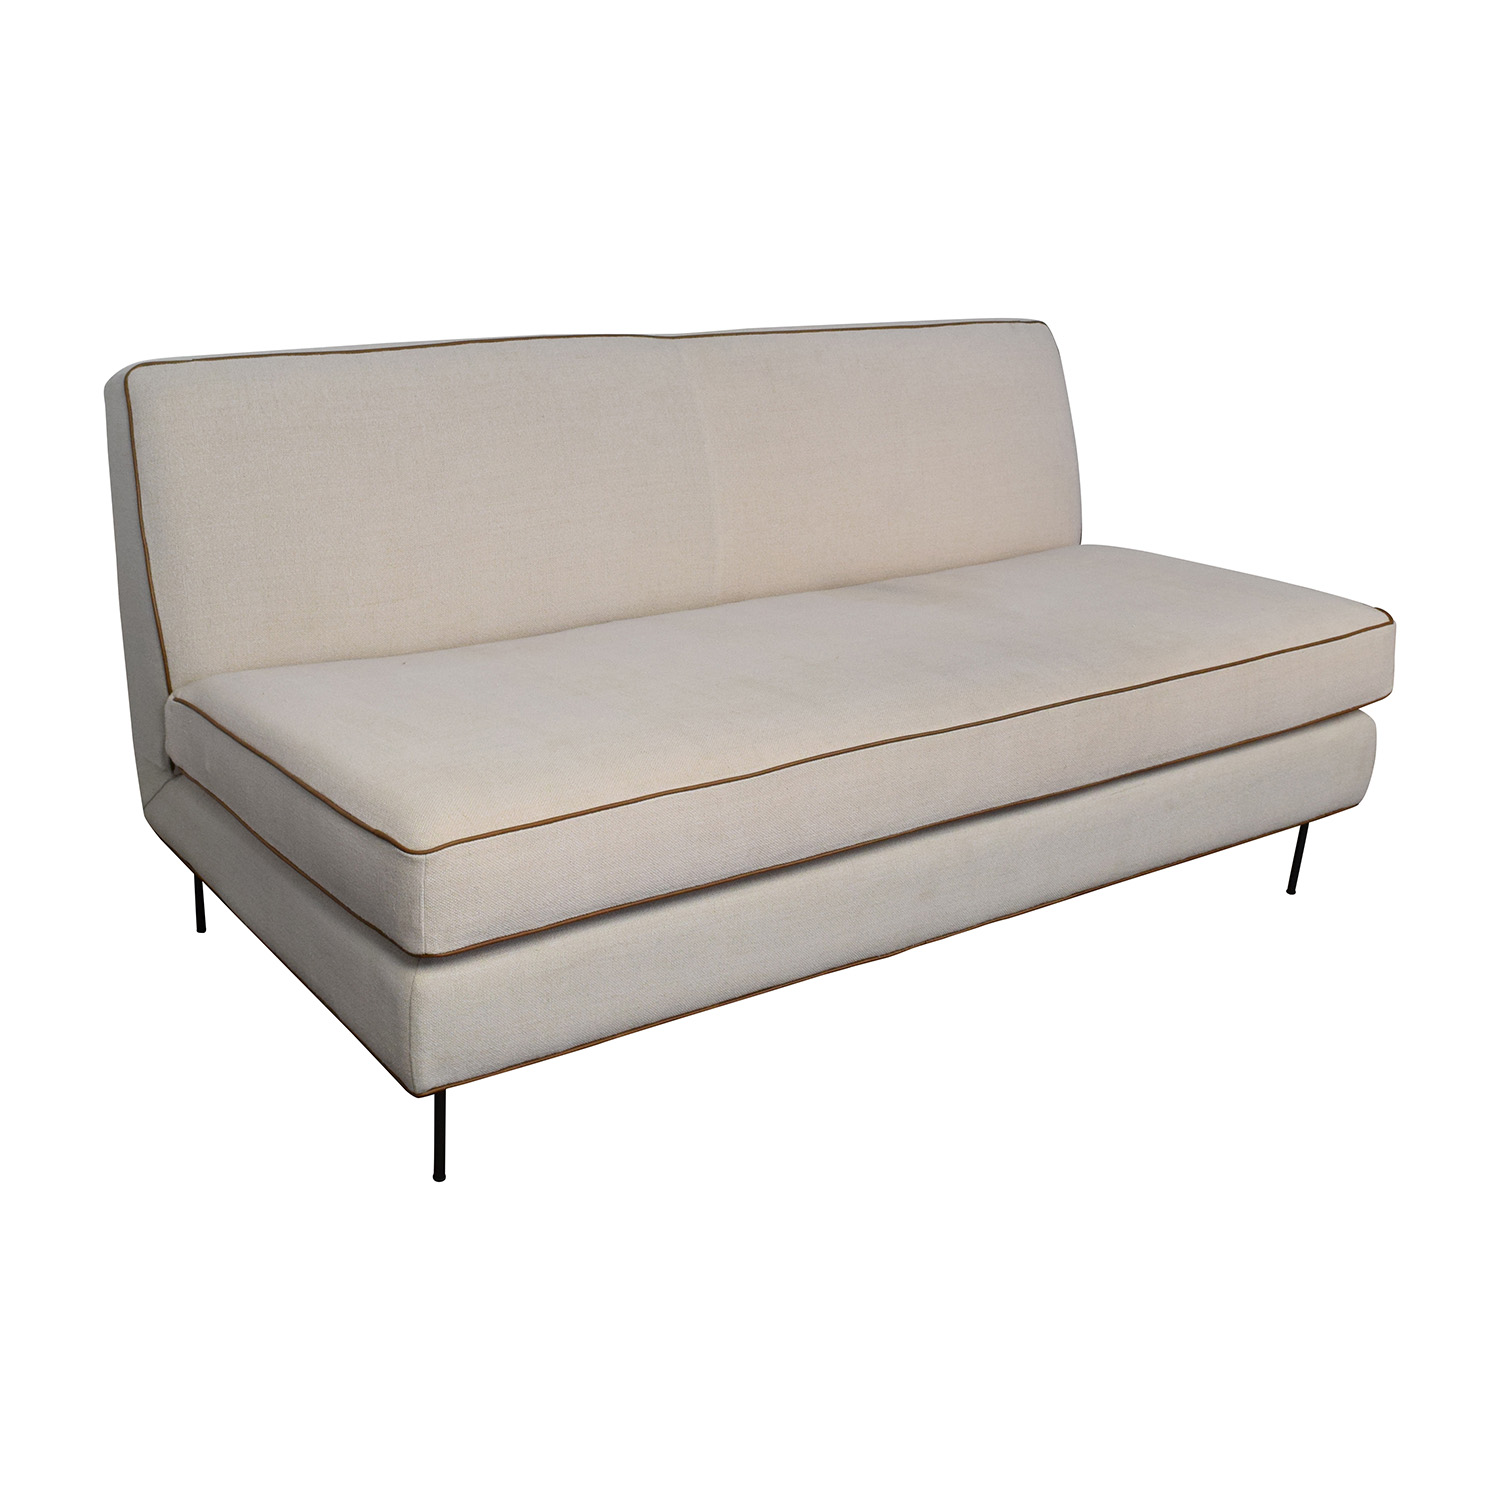 56 Off West Elm West Elm Commune Armless Sofa Sofas